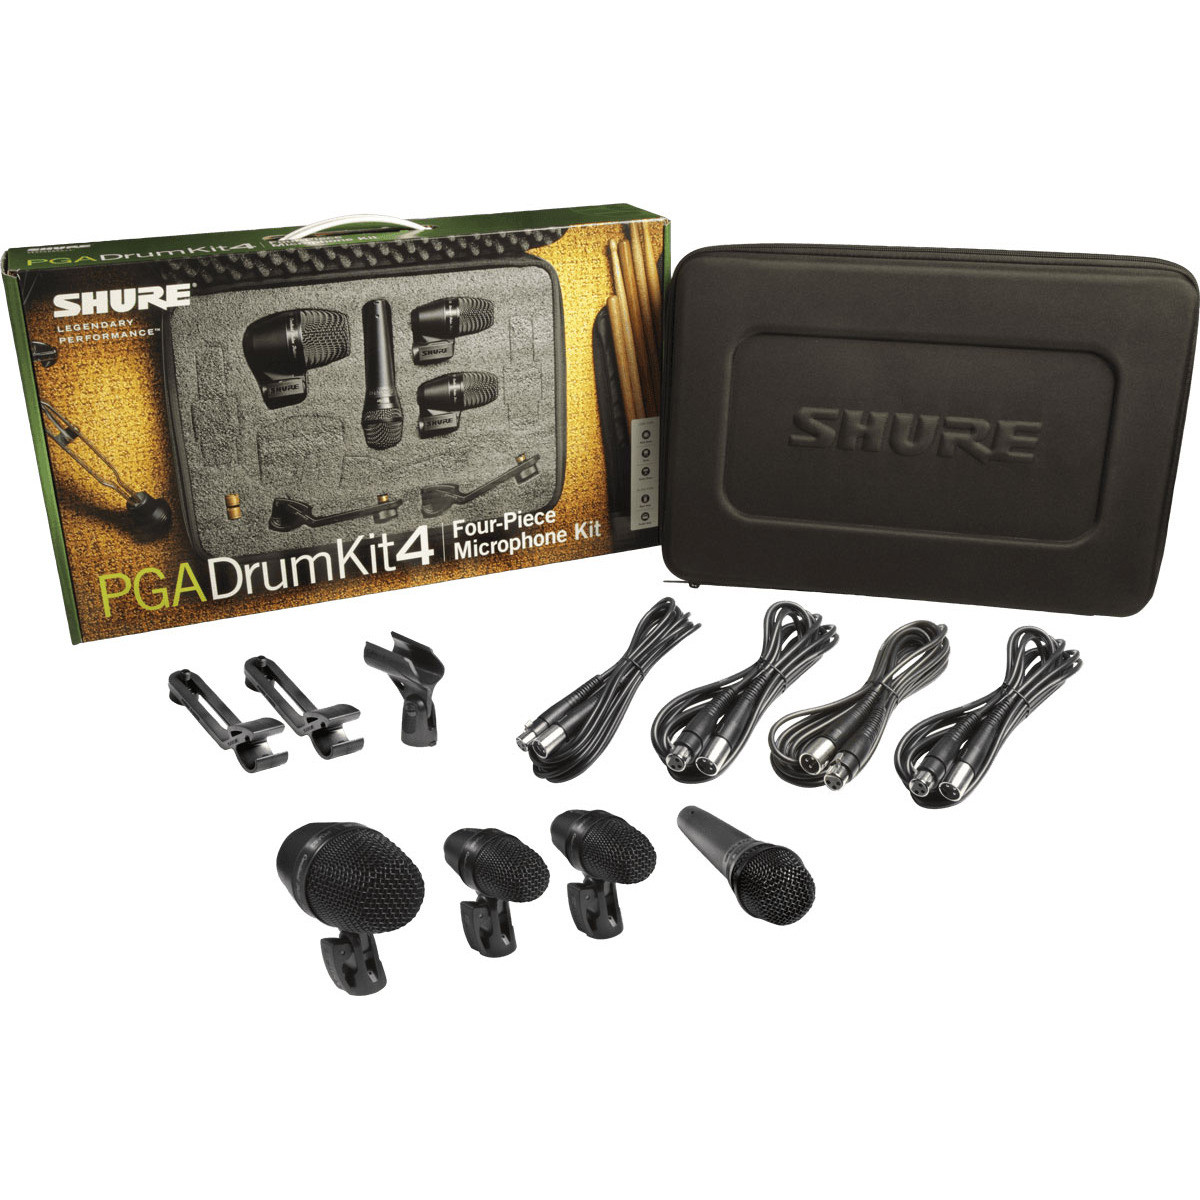 Shure Pgadrumkit4 Drum Microphone Kit 4 Piece At Gear4music Equalizers Crossovers Wiring Kits Caps And More Click On Picture To Full Loading Zoom